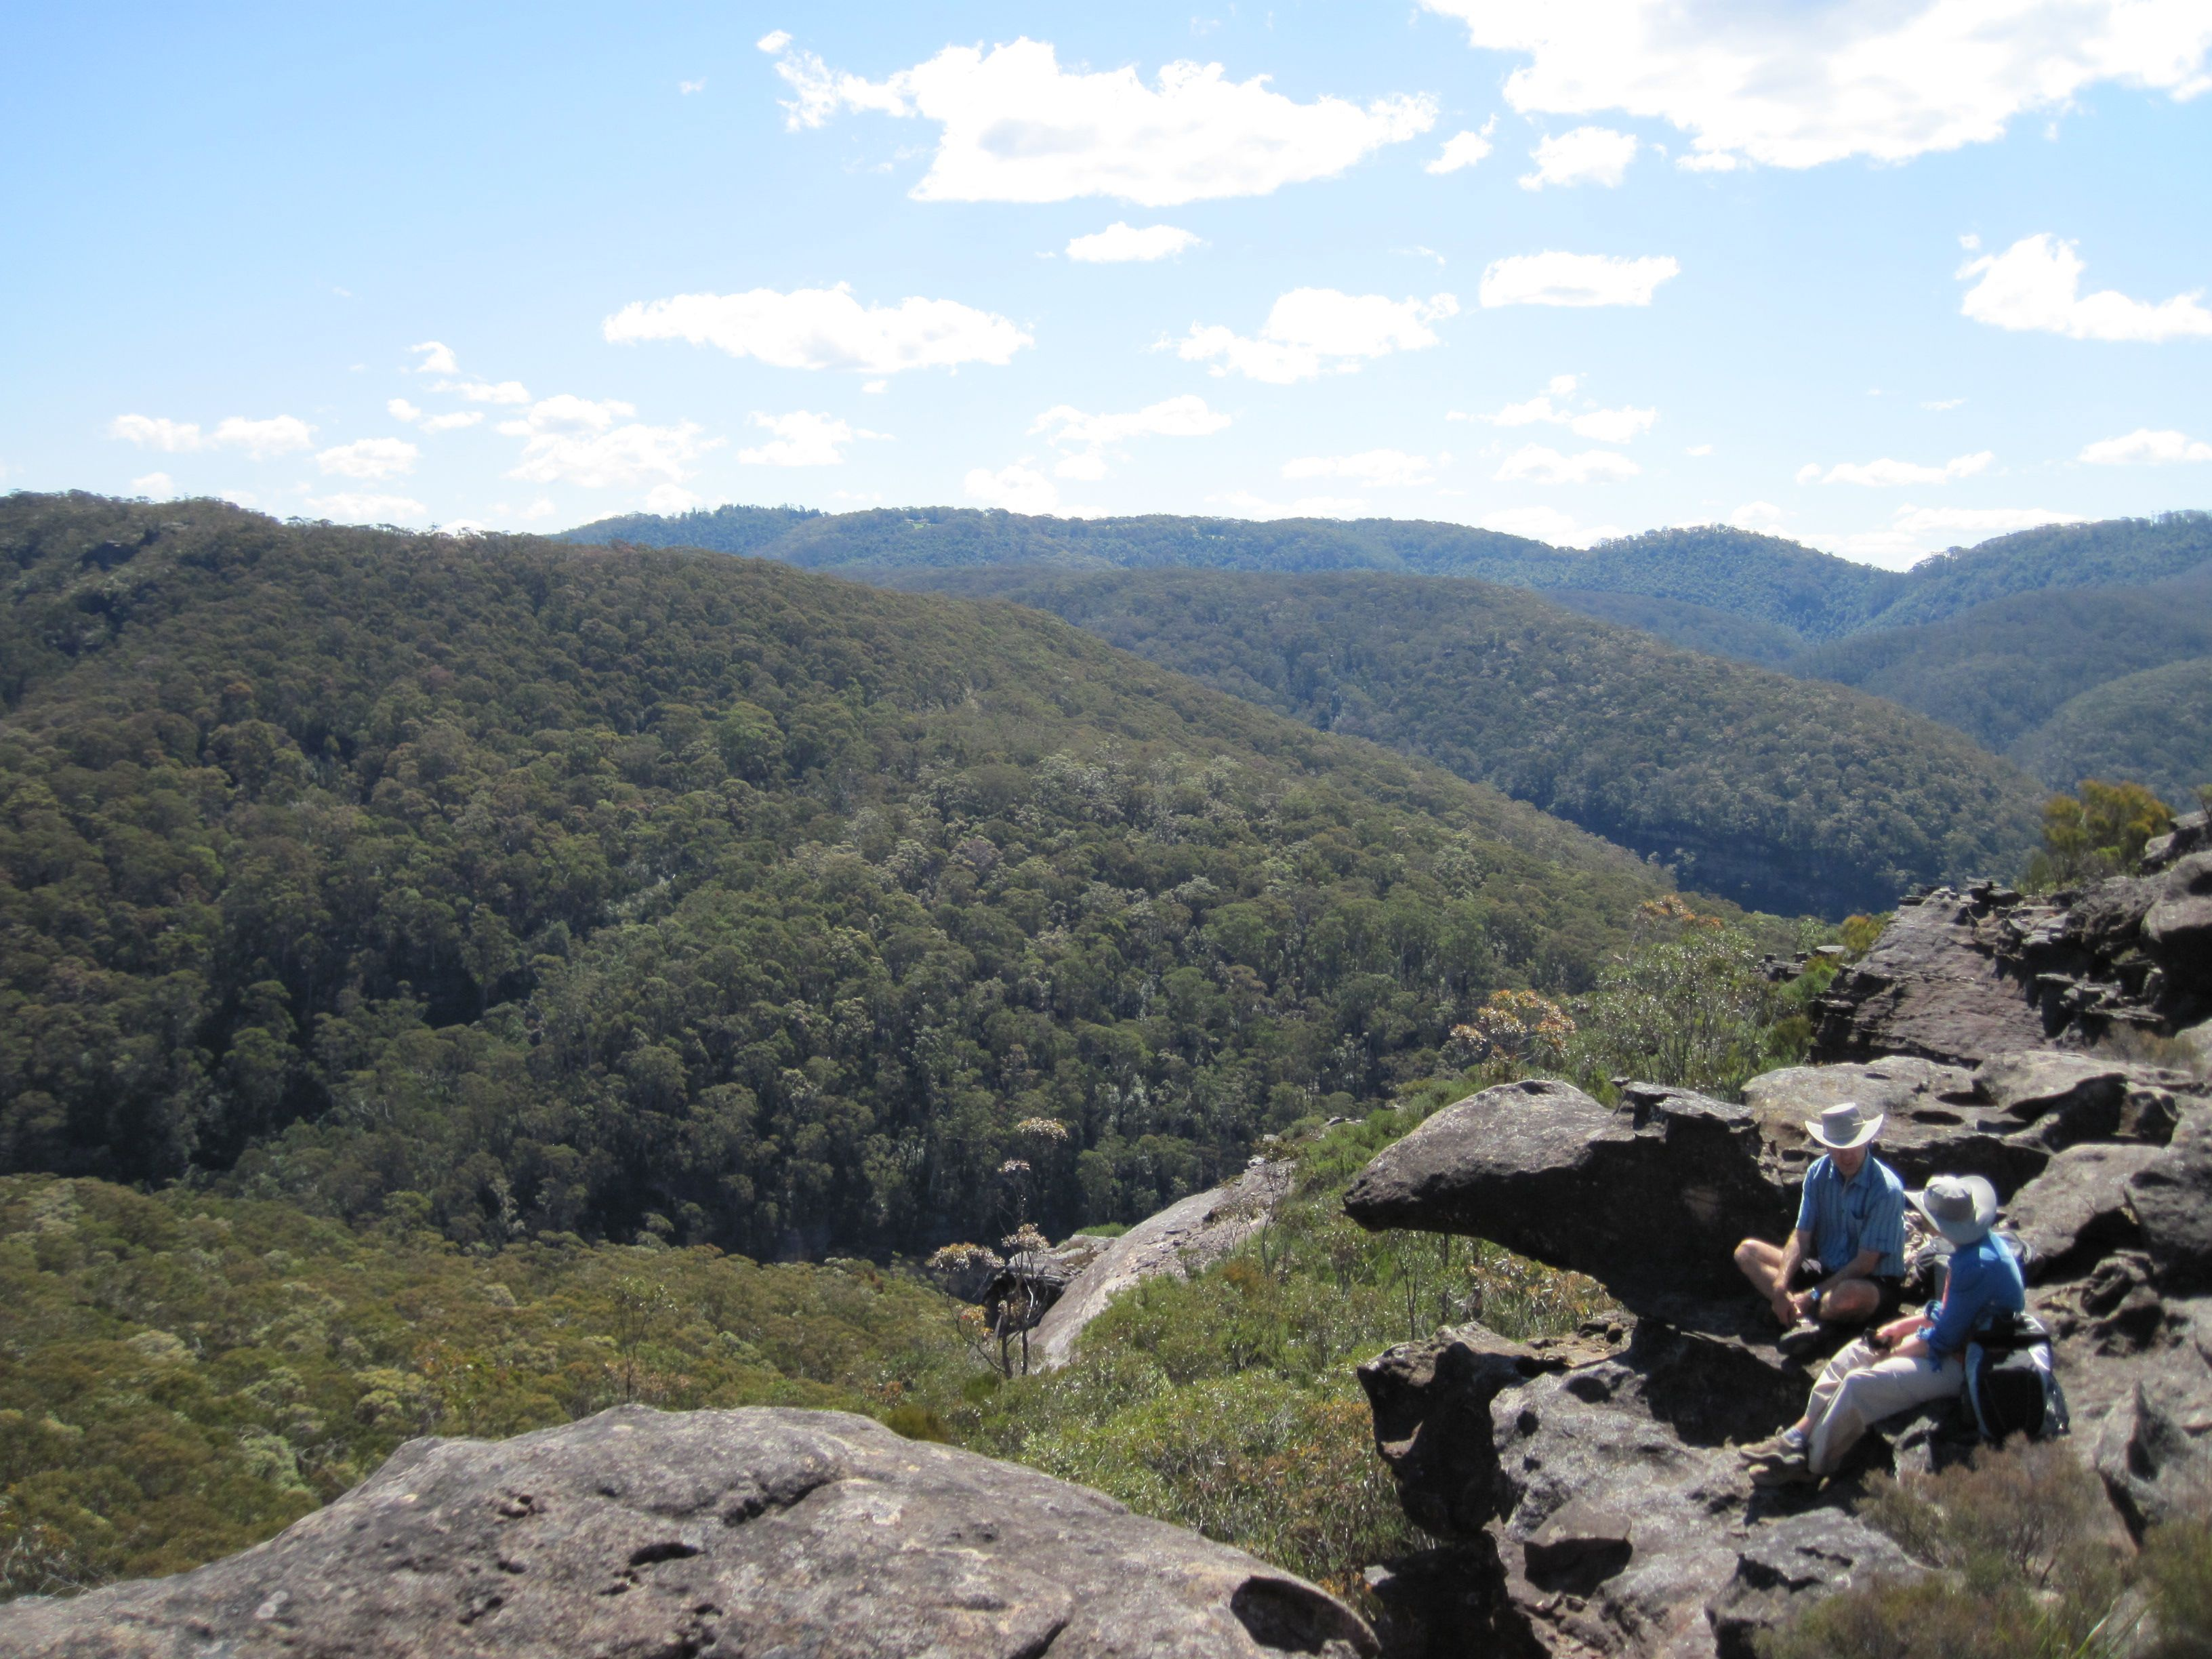 Getting off the beaten track in the beautiful Blue Mountains